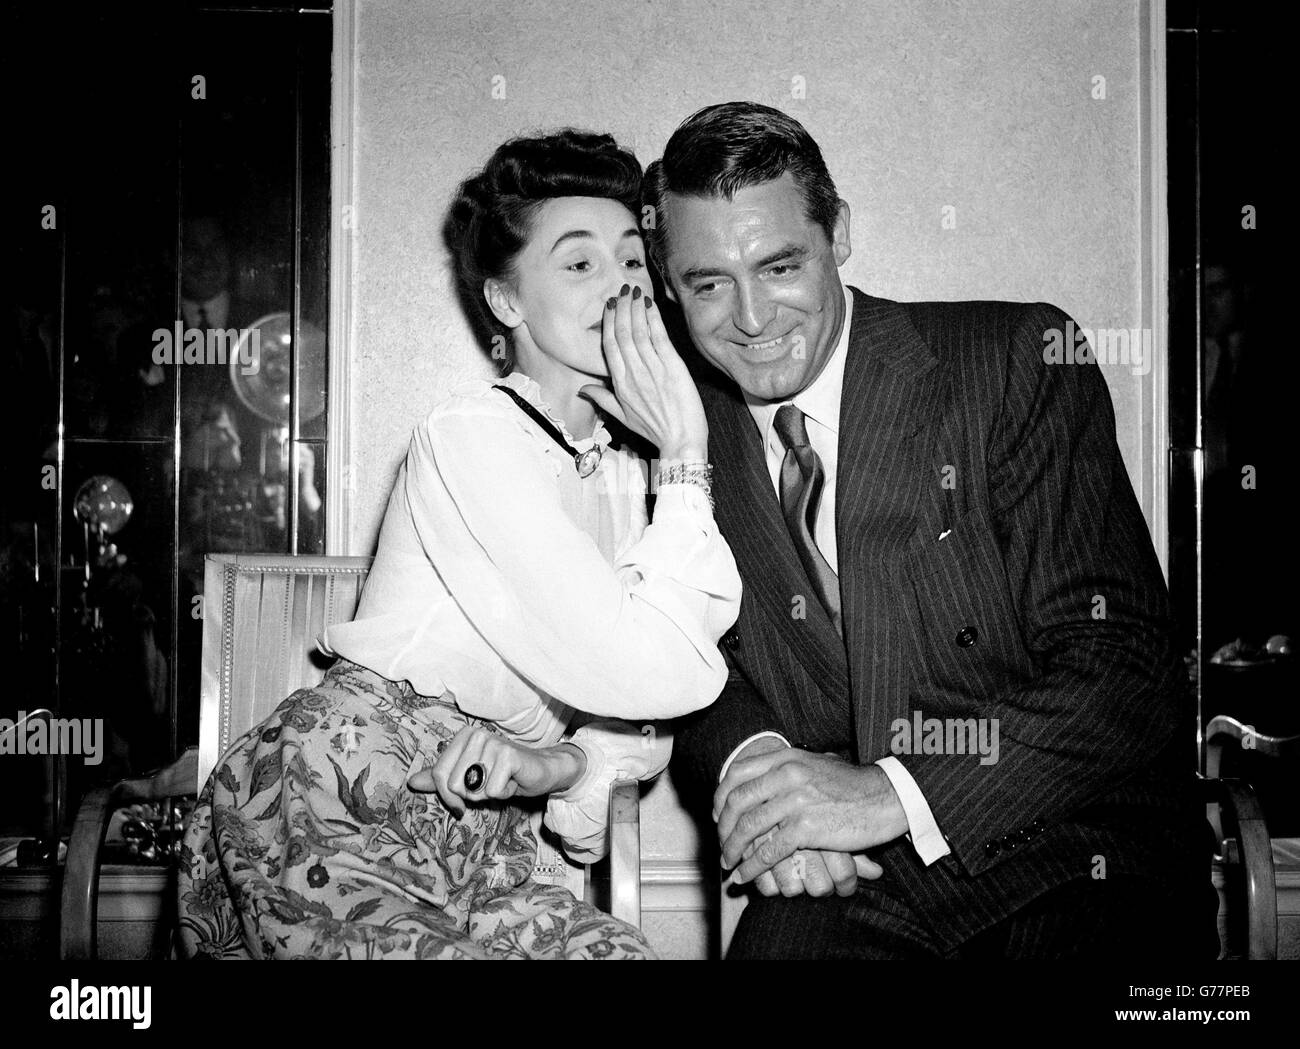 Film - Cary Grant and Mary Stone - Dorchester Hotel, London - Stock Image